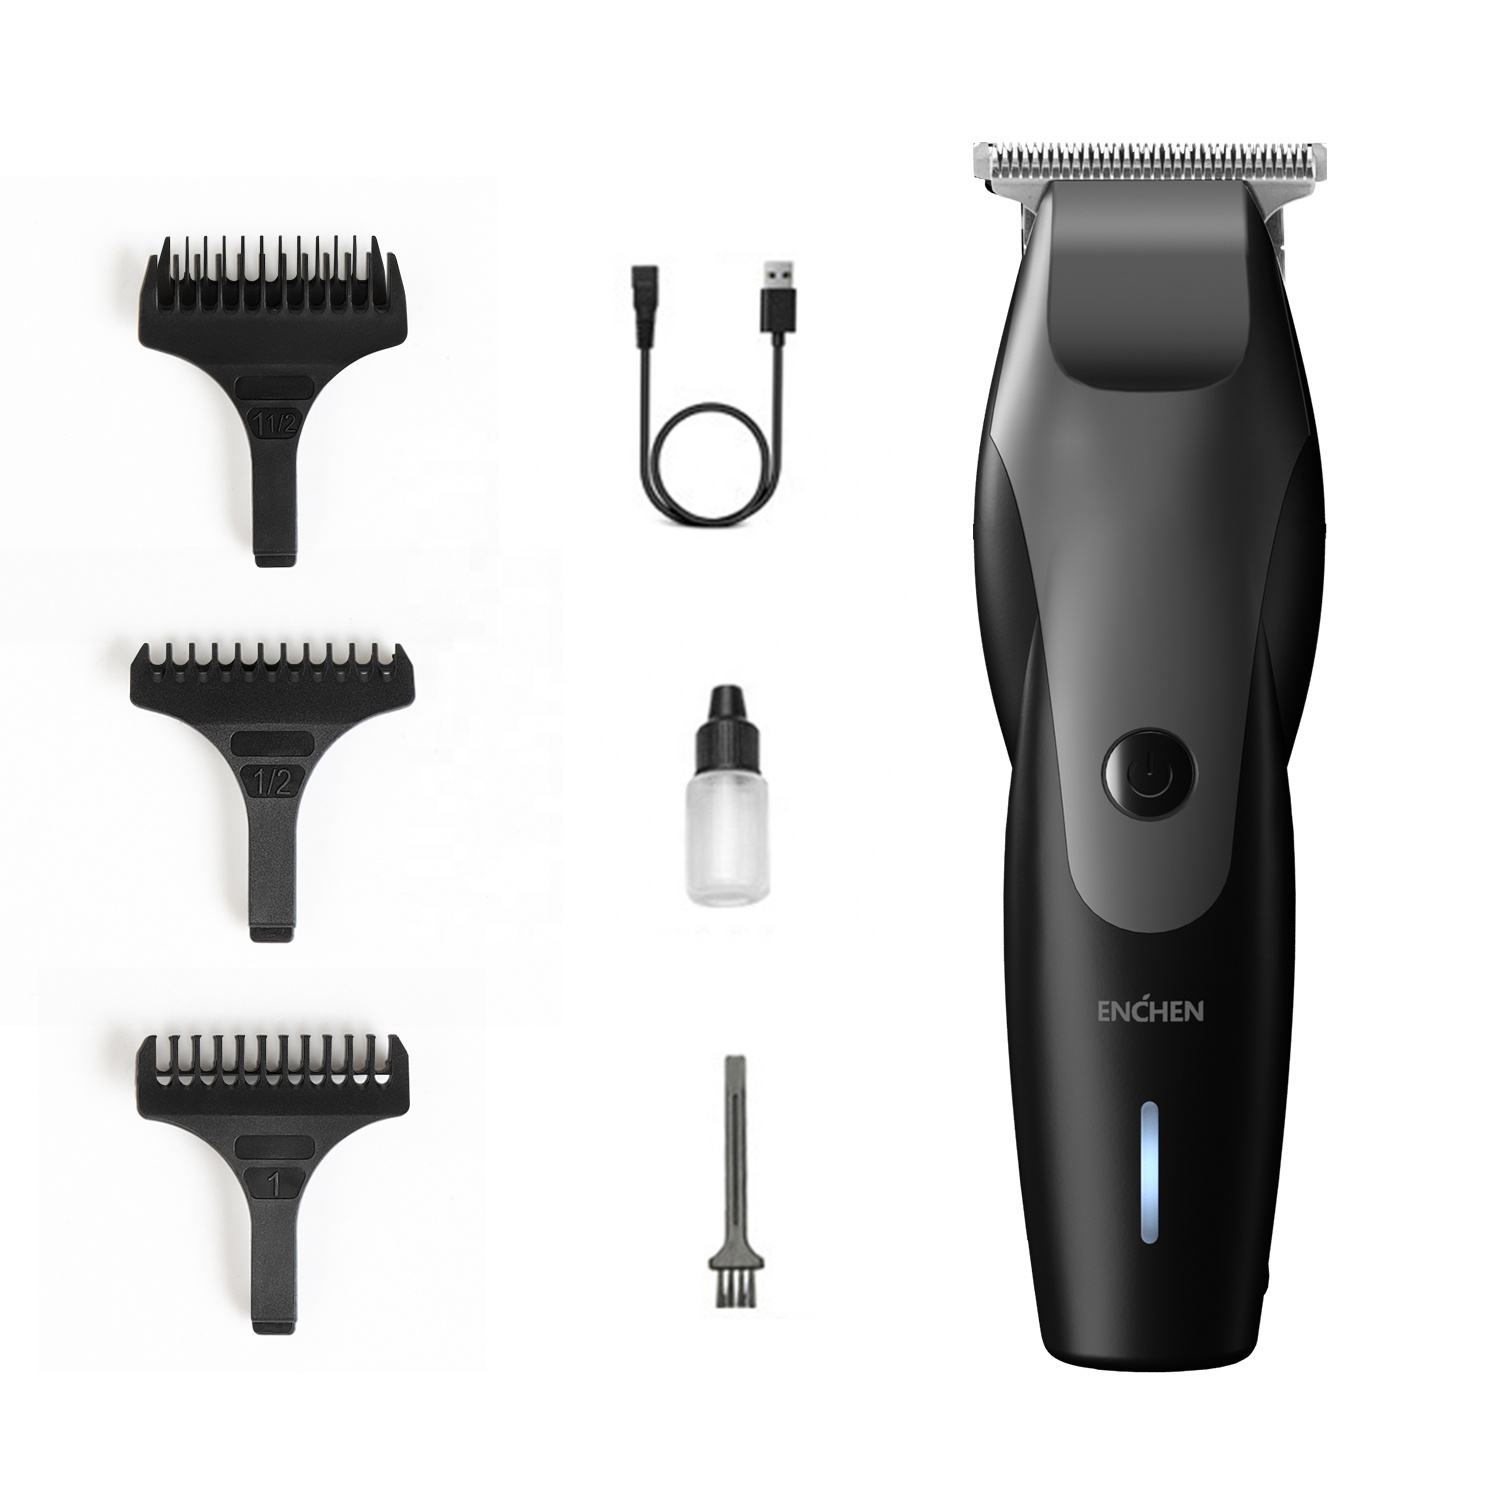 xiaomi hair and beard trimmer hair machine cut electric hand hair clipper xiomi